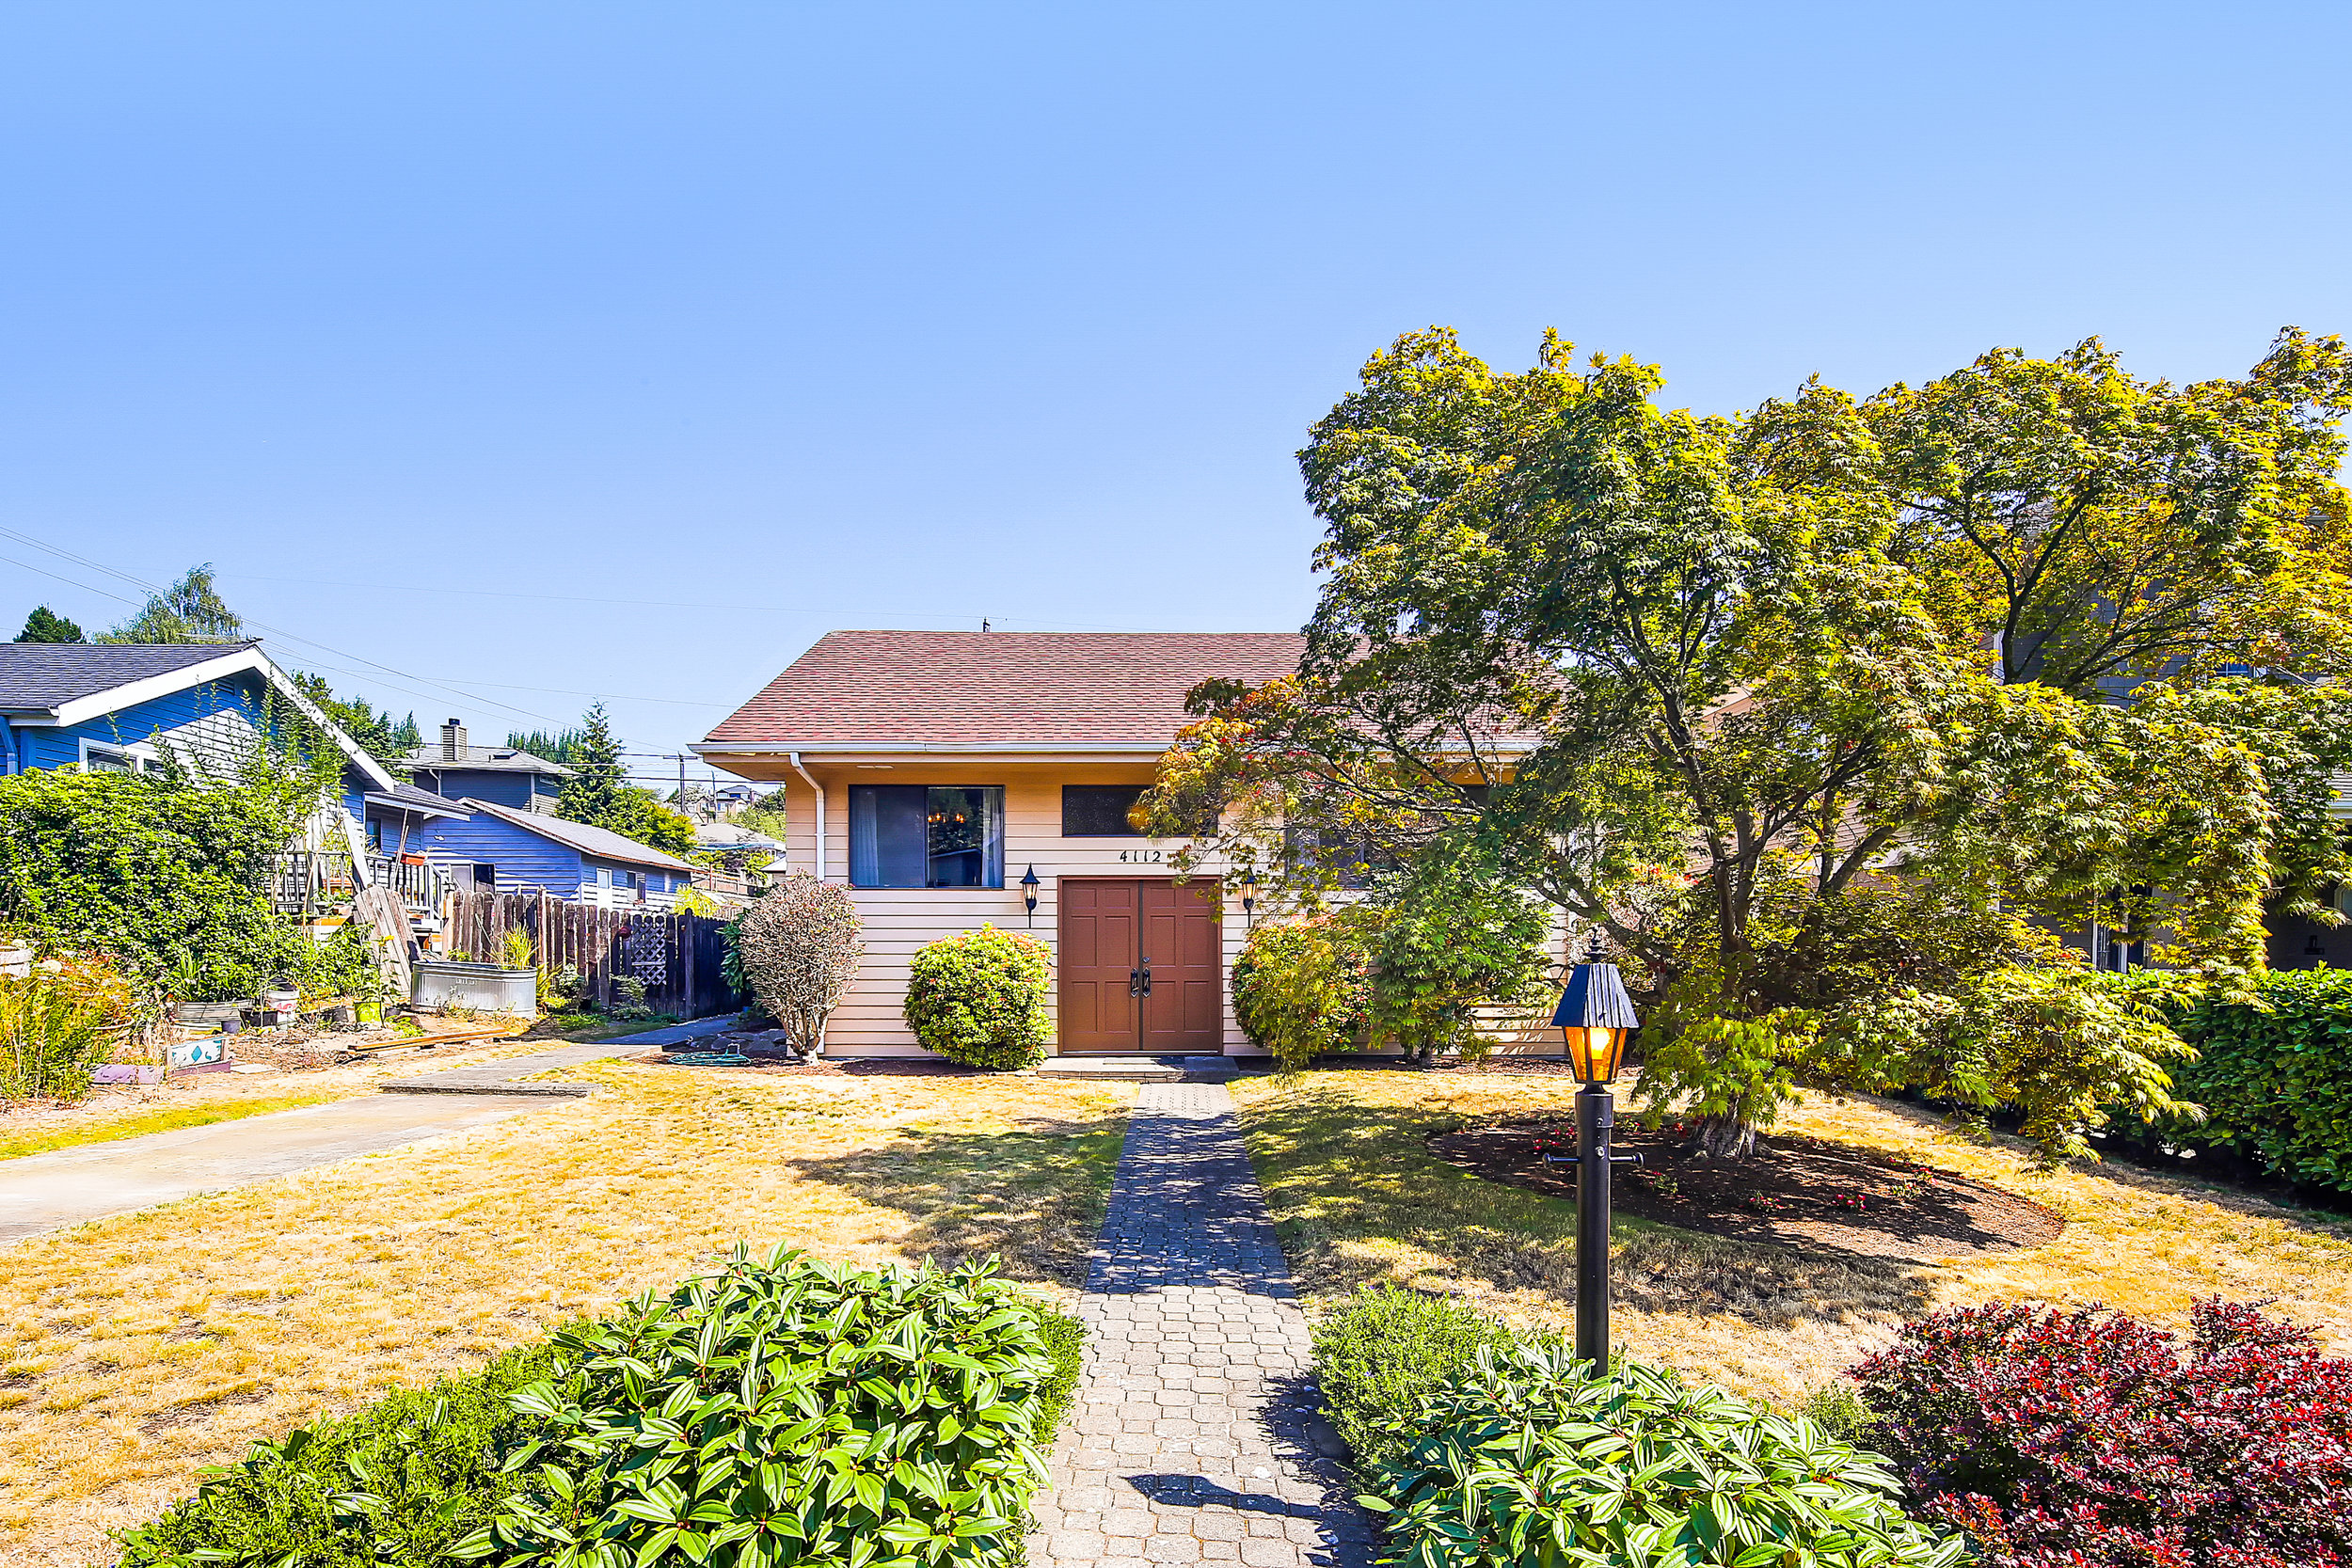 LISTING: 4112 47th AVE SW, SEATTLE | LIST PRICE: $675,000 | SOLD PRICE: $678,000